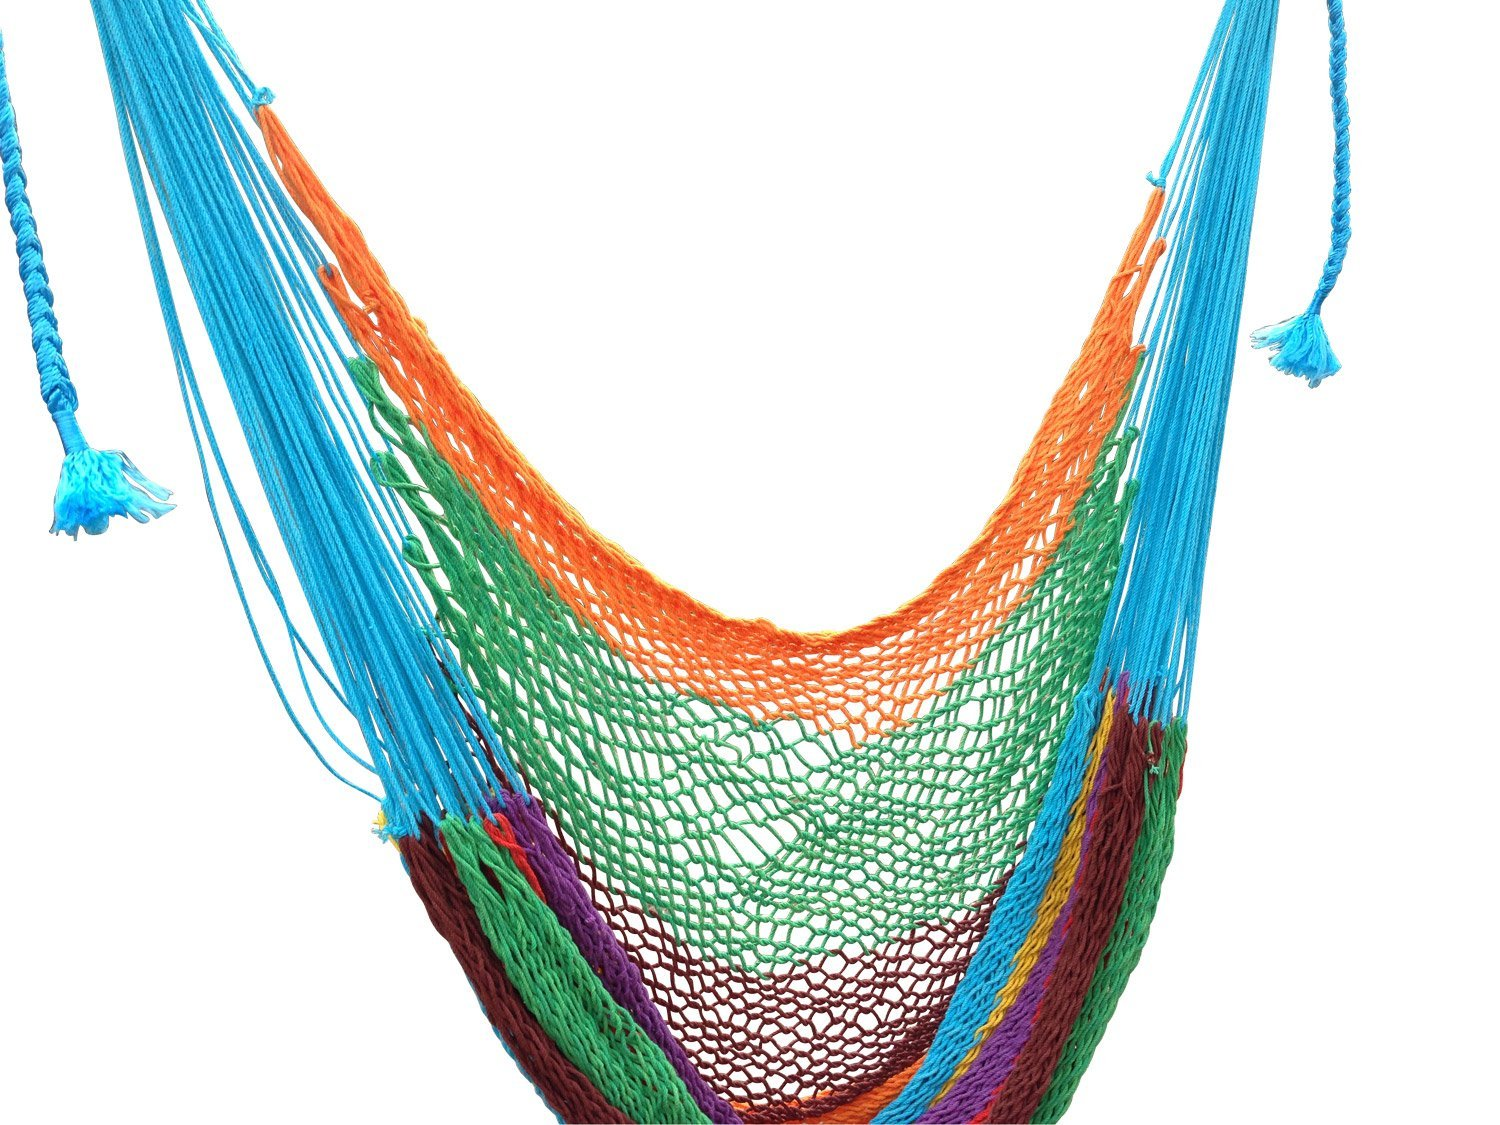 See`s Garden Cotton Rope Hammock Cradle Chair with Wood Stretcher Handmade by Mayan Artisans. Soft, Comfortable and highest Quality, Multi-Color, High Capacity (Multi-Color)